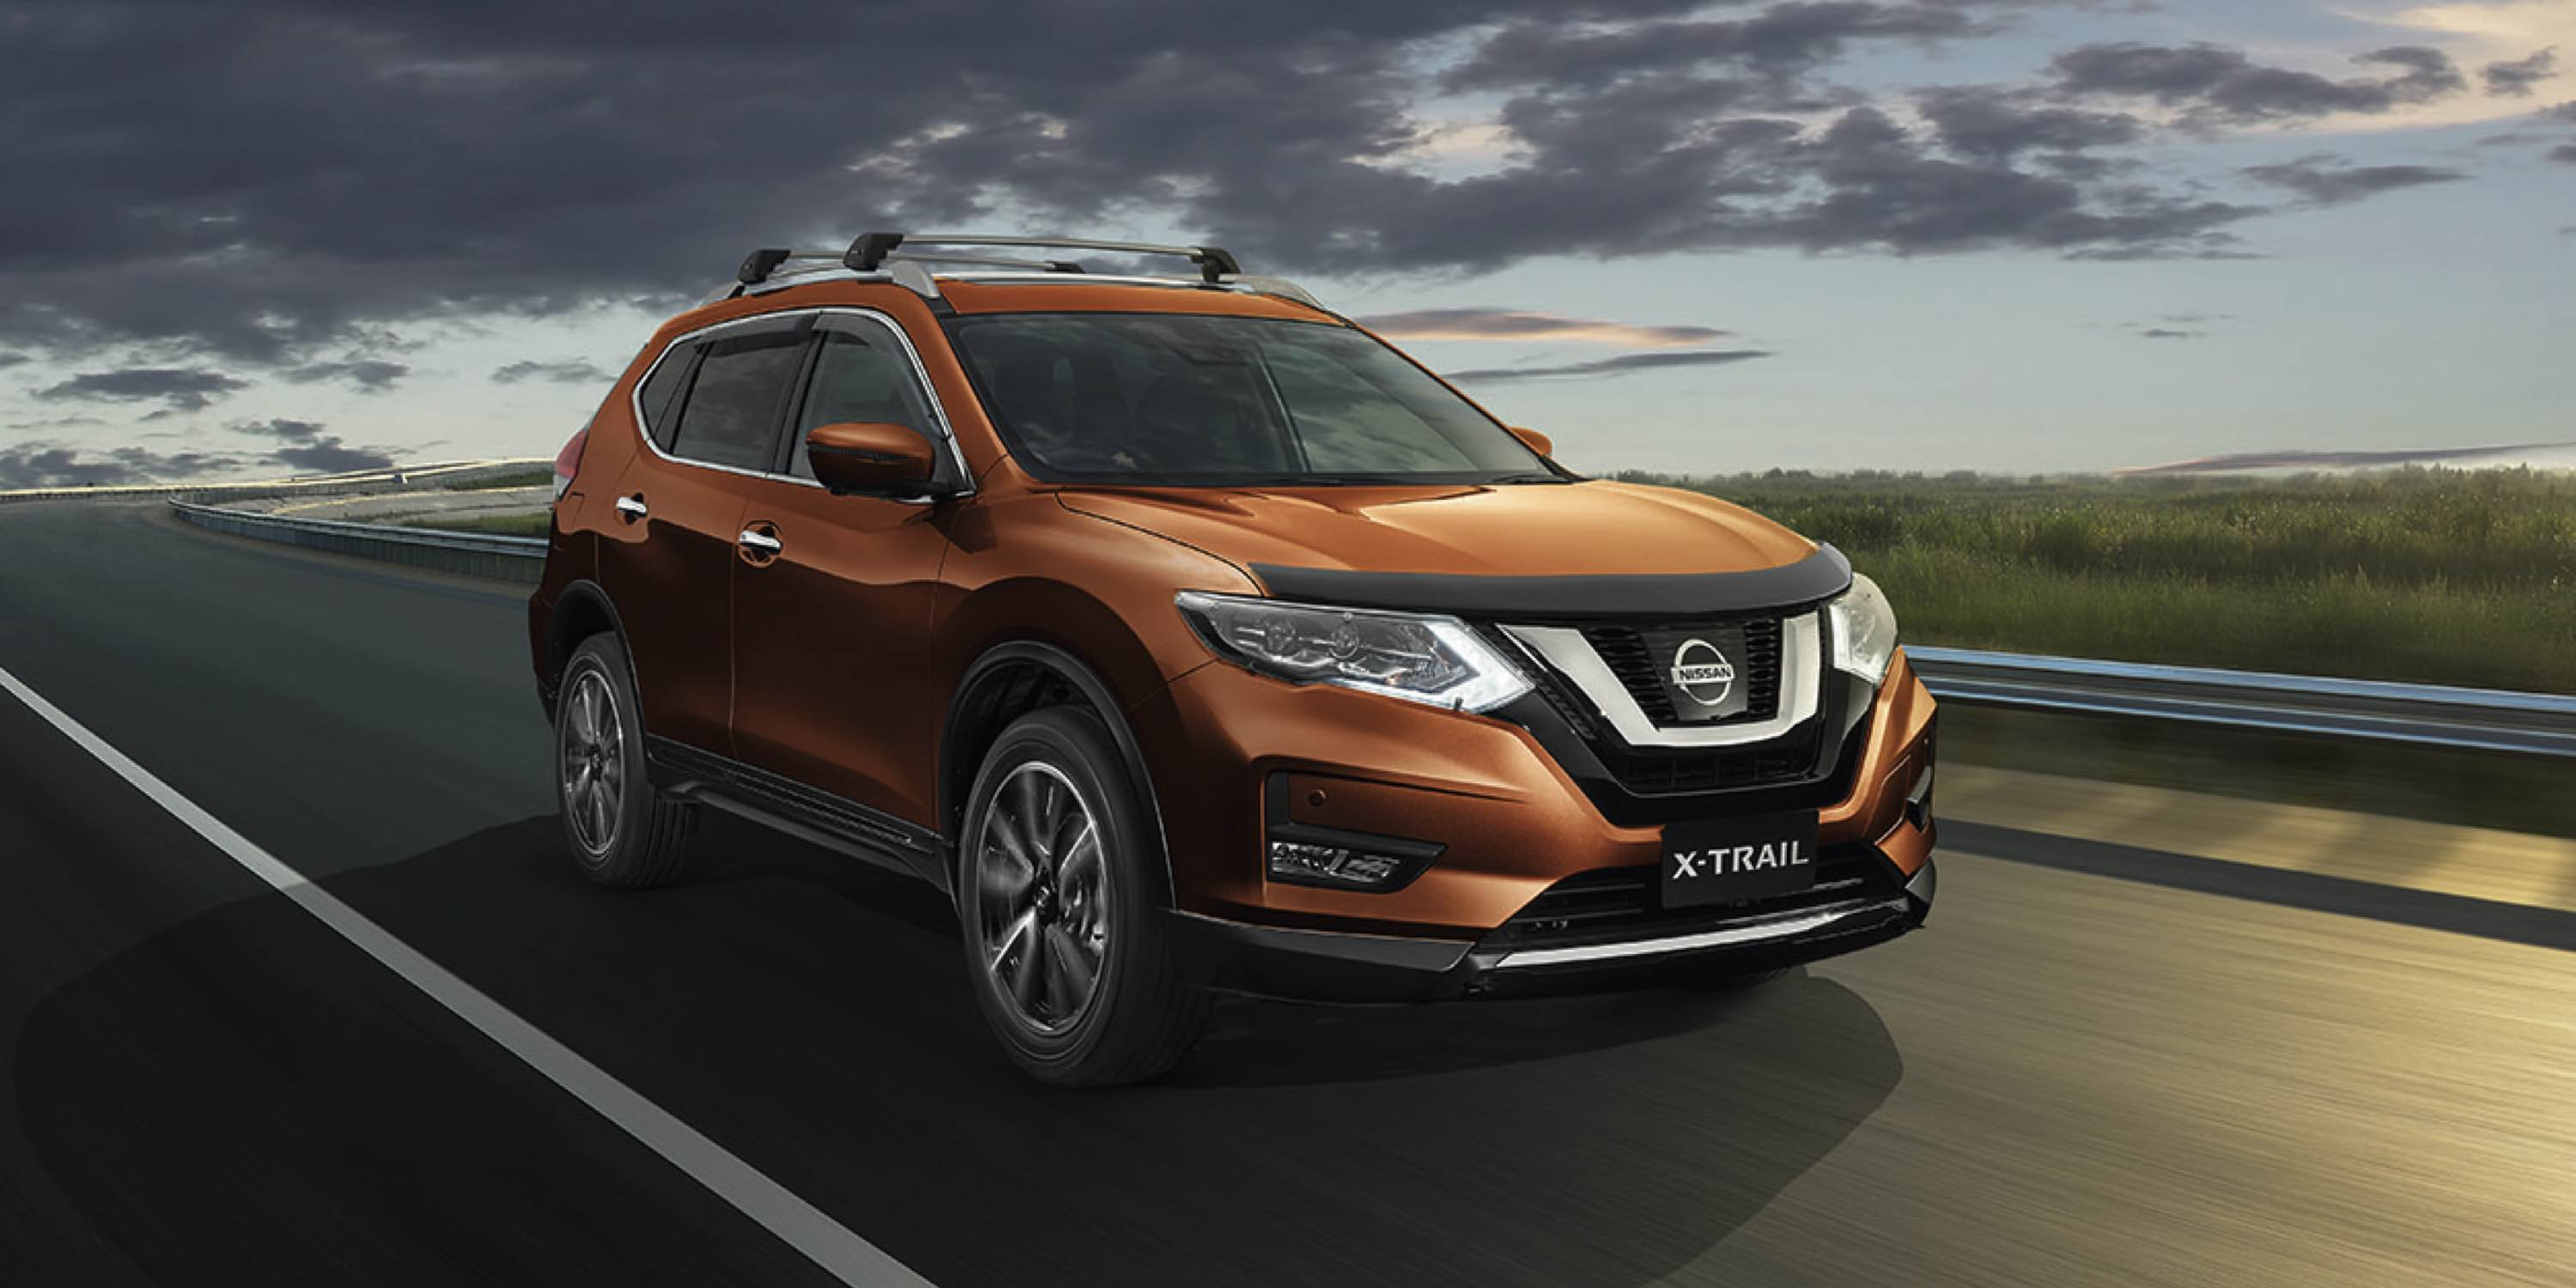 Copper Blaze X-TRAIL TL Driving on remote highway